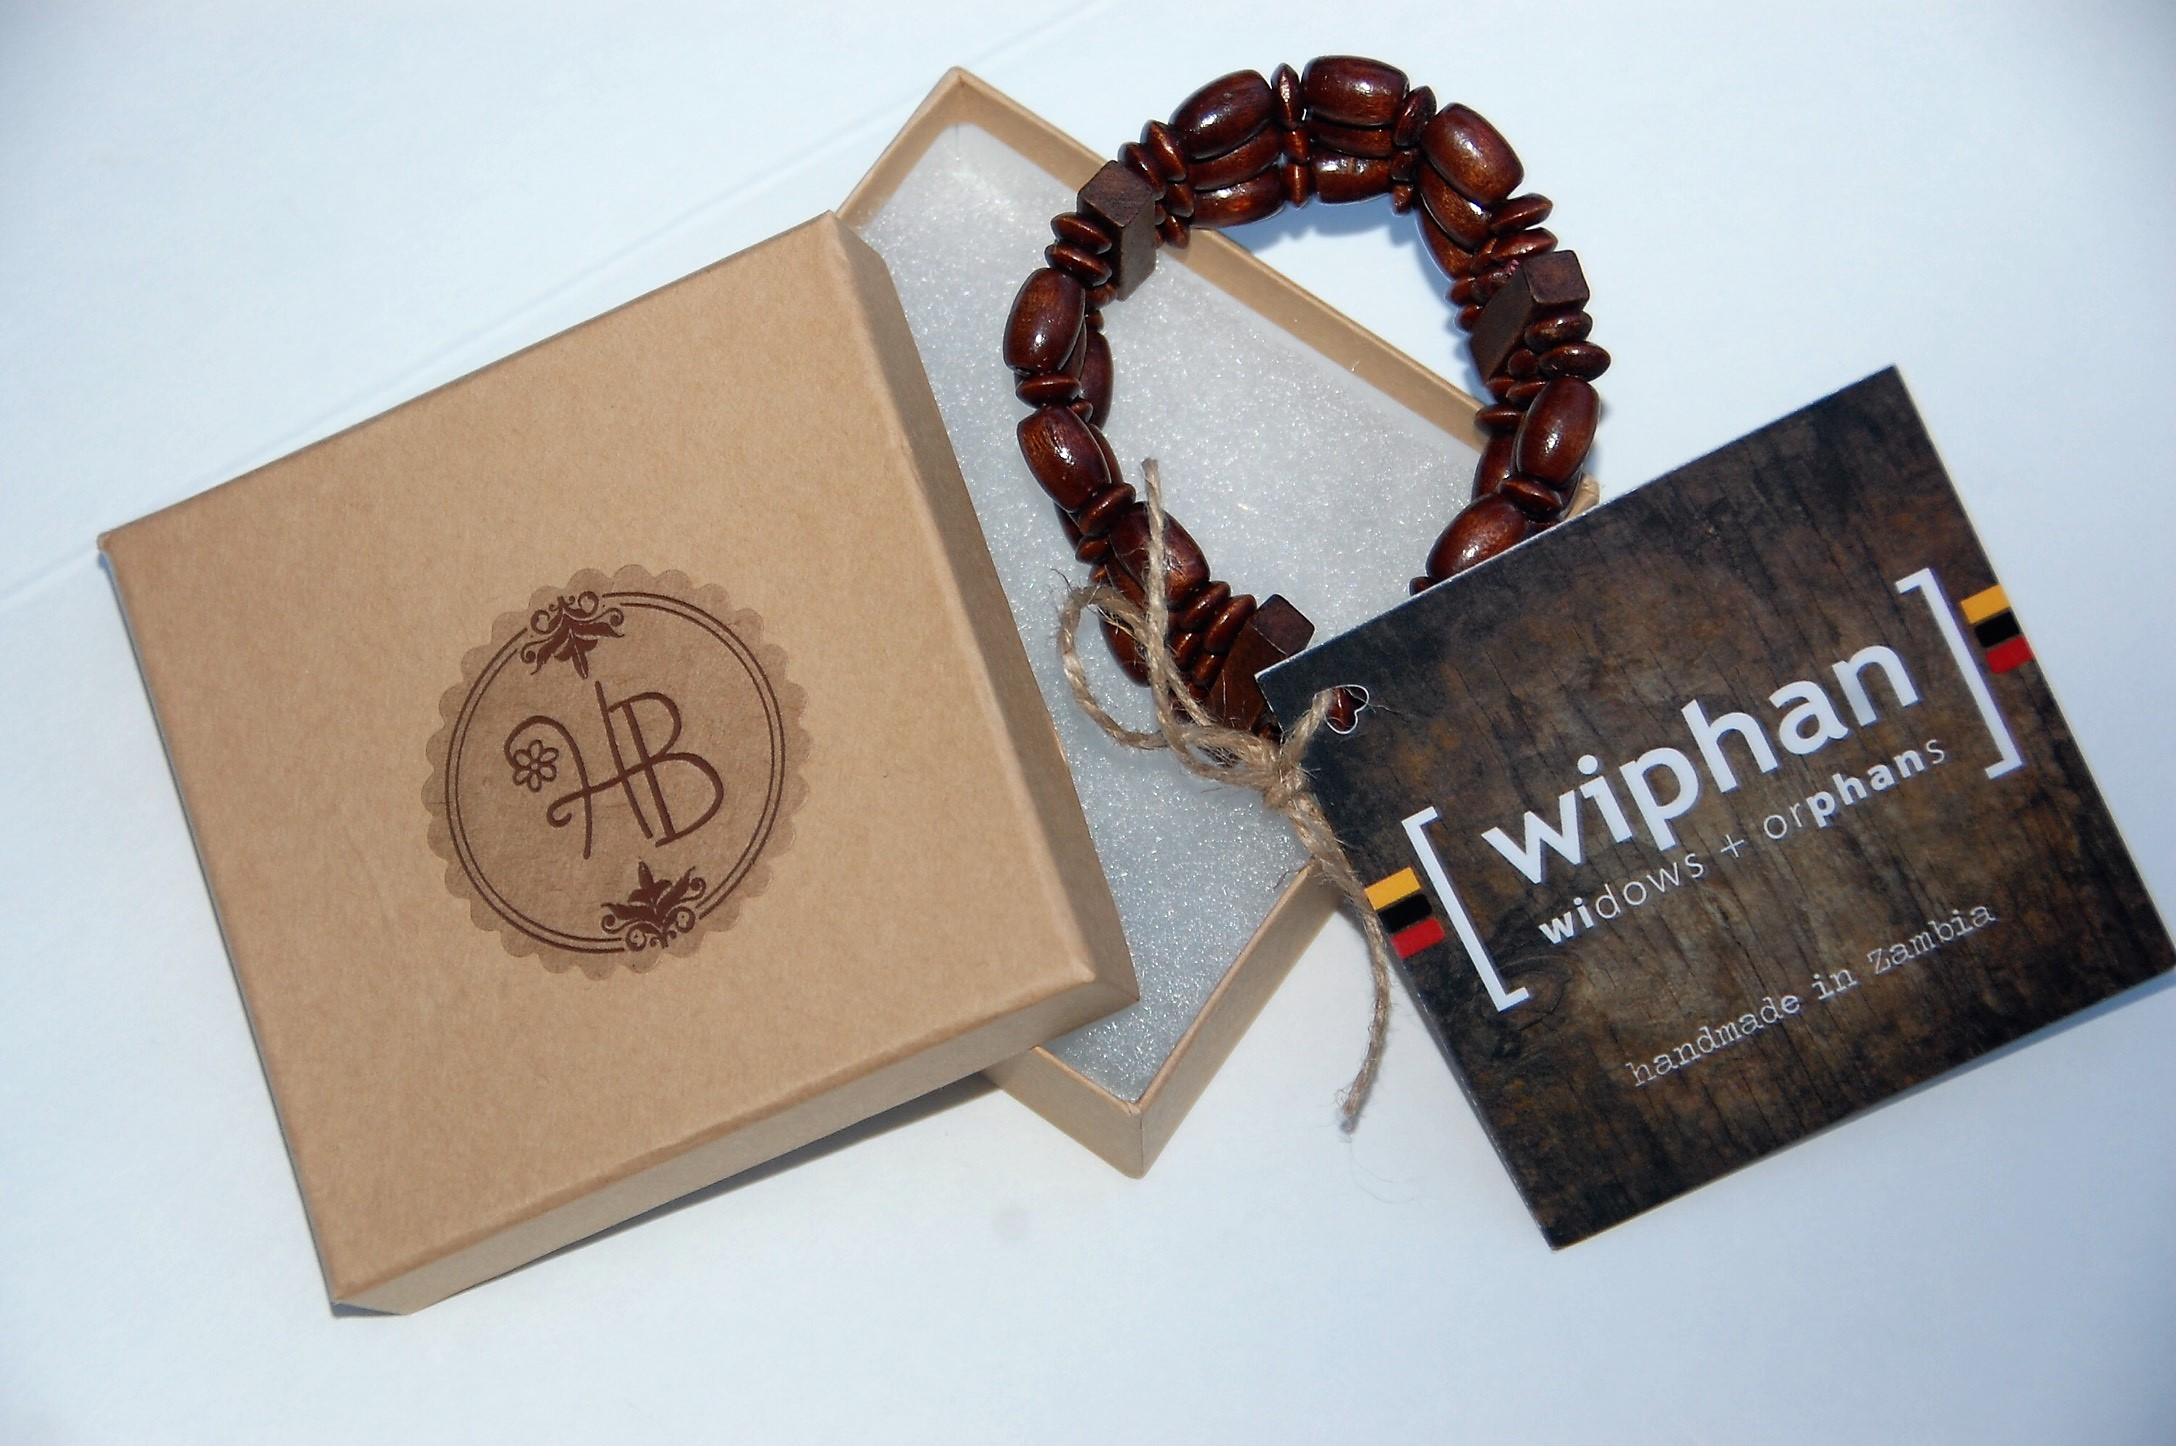 This bracelet is supporting WIPHAN ministry that helps women and orphans in Zambia. I paired it with HM Willow bracelets for Honey Butter Boutique